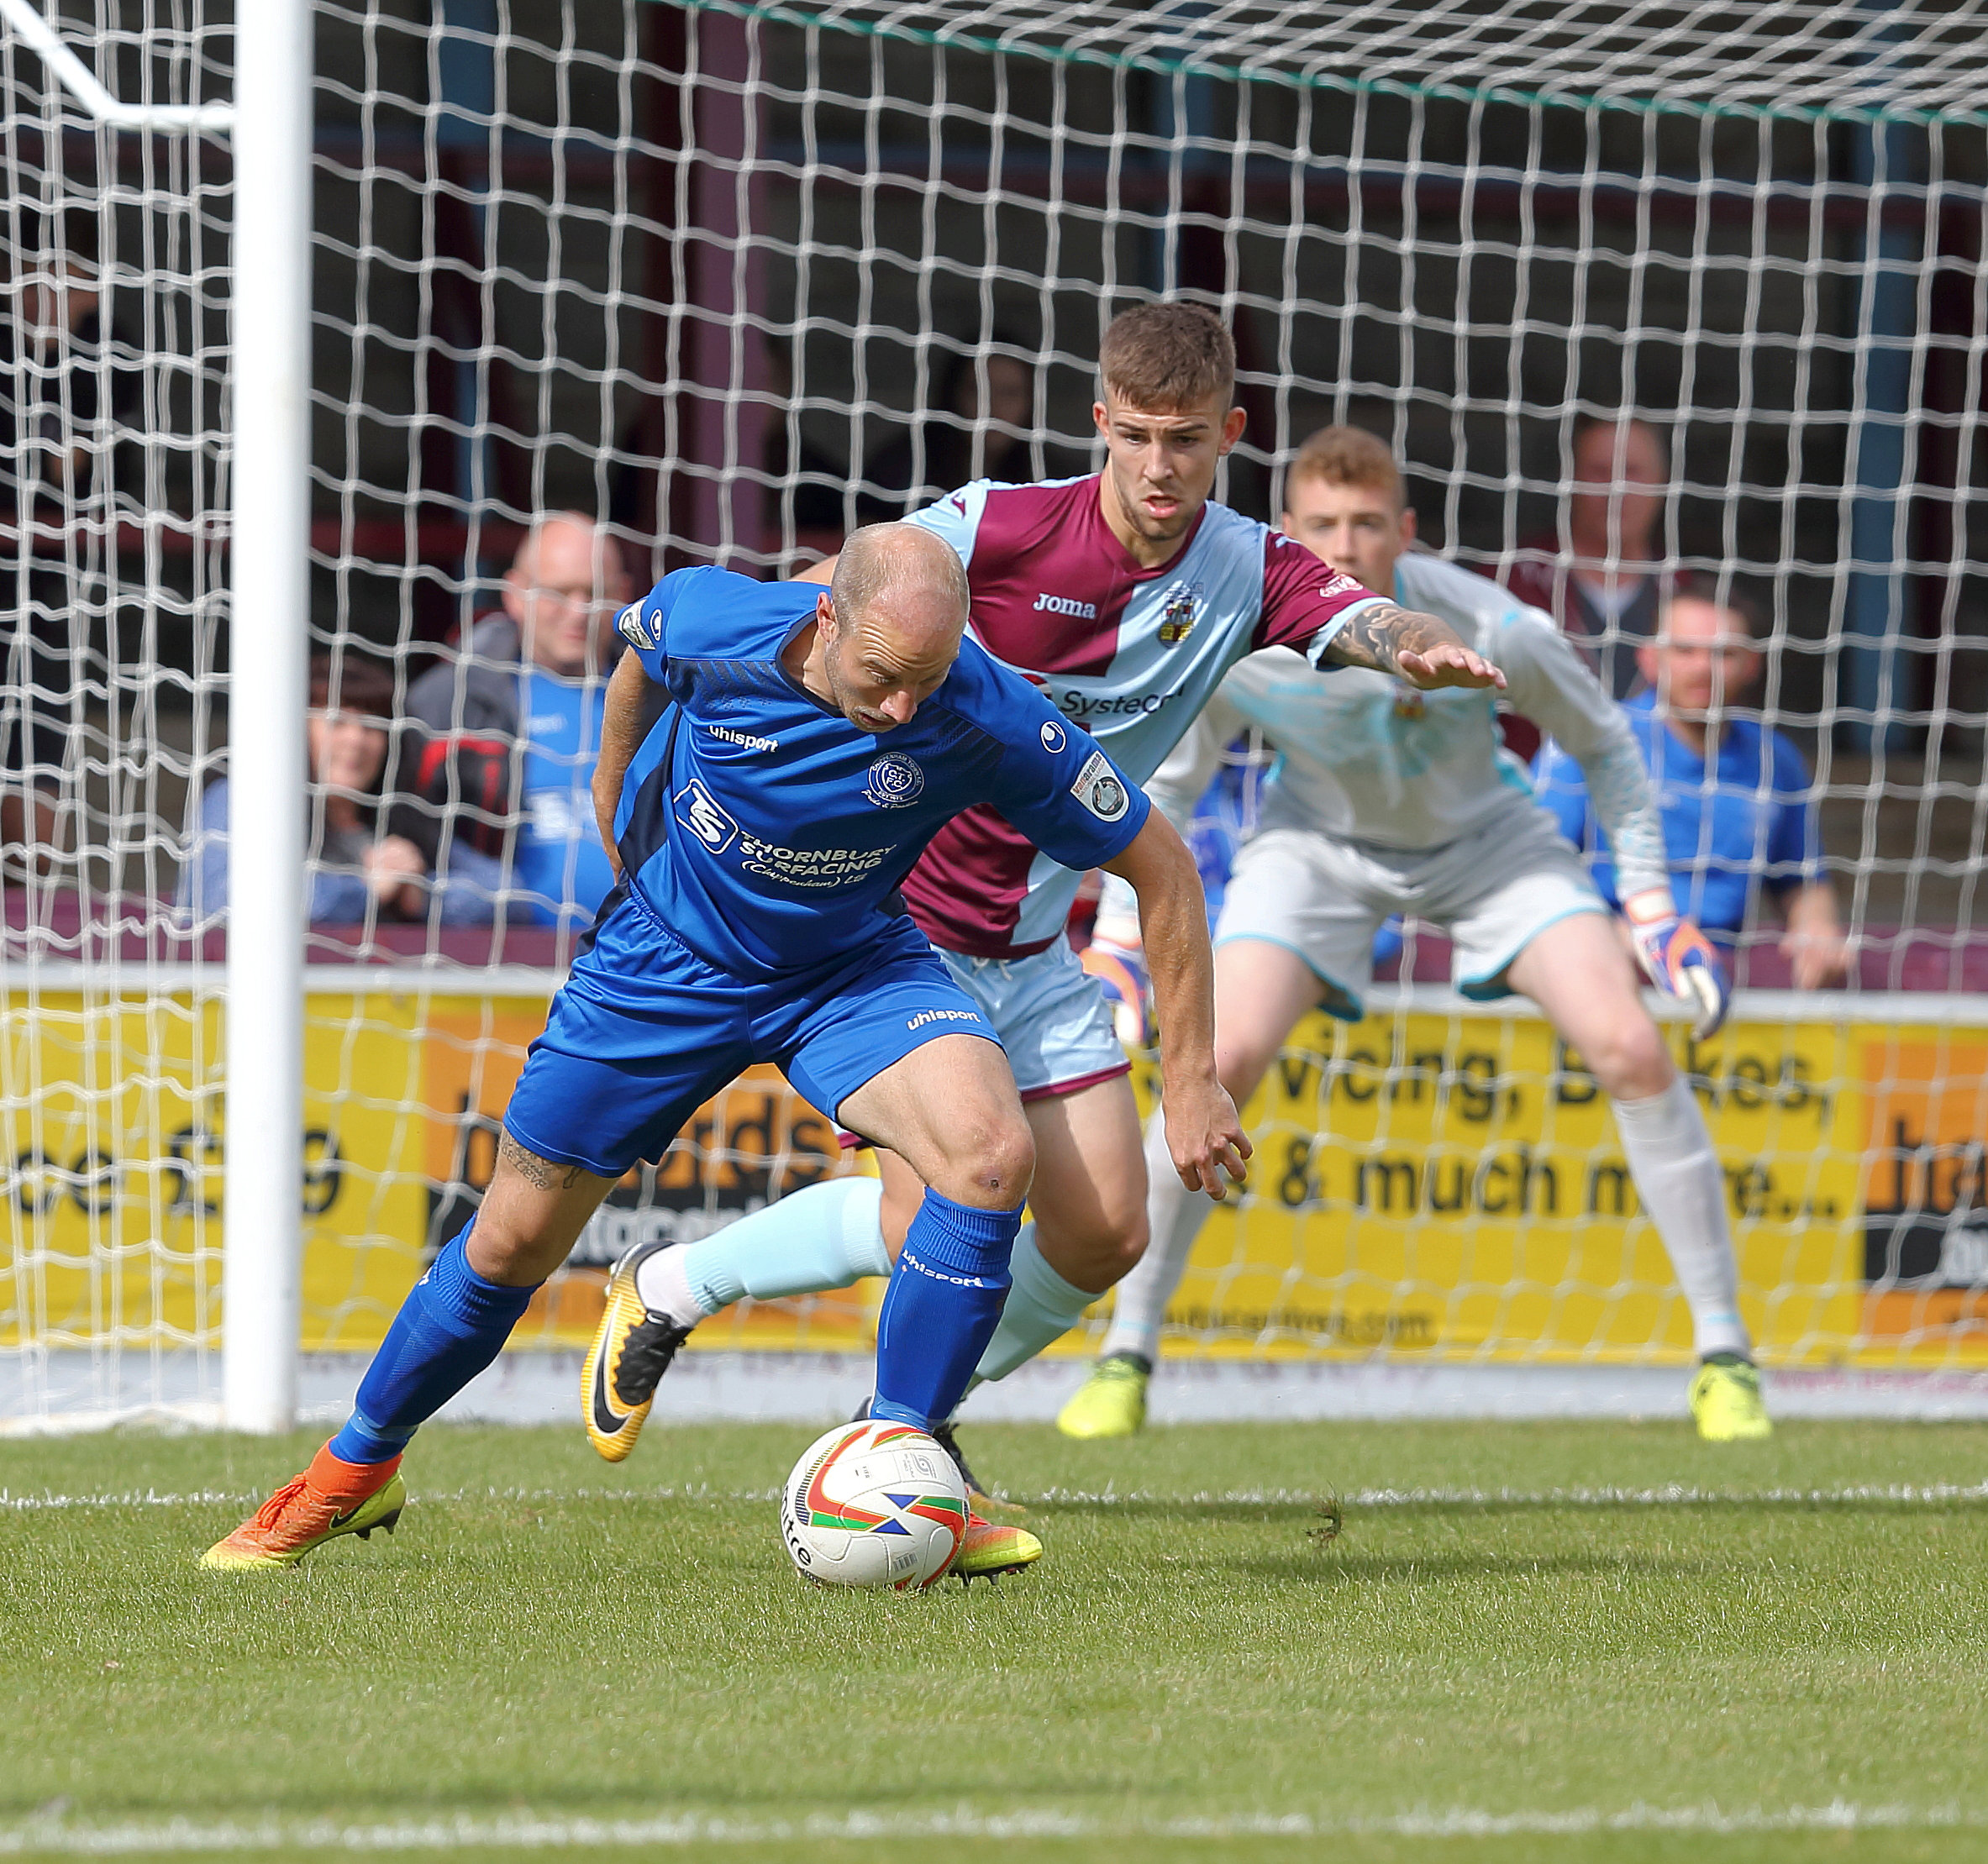 Chippenham Town's Dave Pratt (blue) in action at Weymouth. PICTURE: RICHARD CHAPPELL